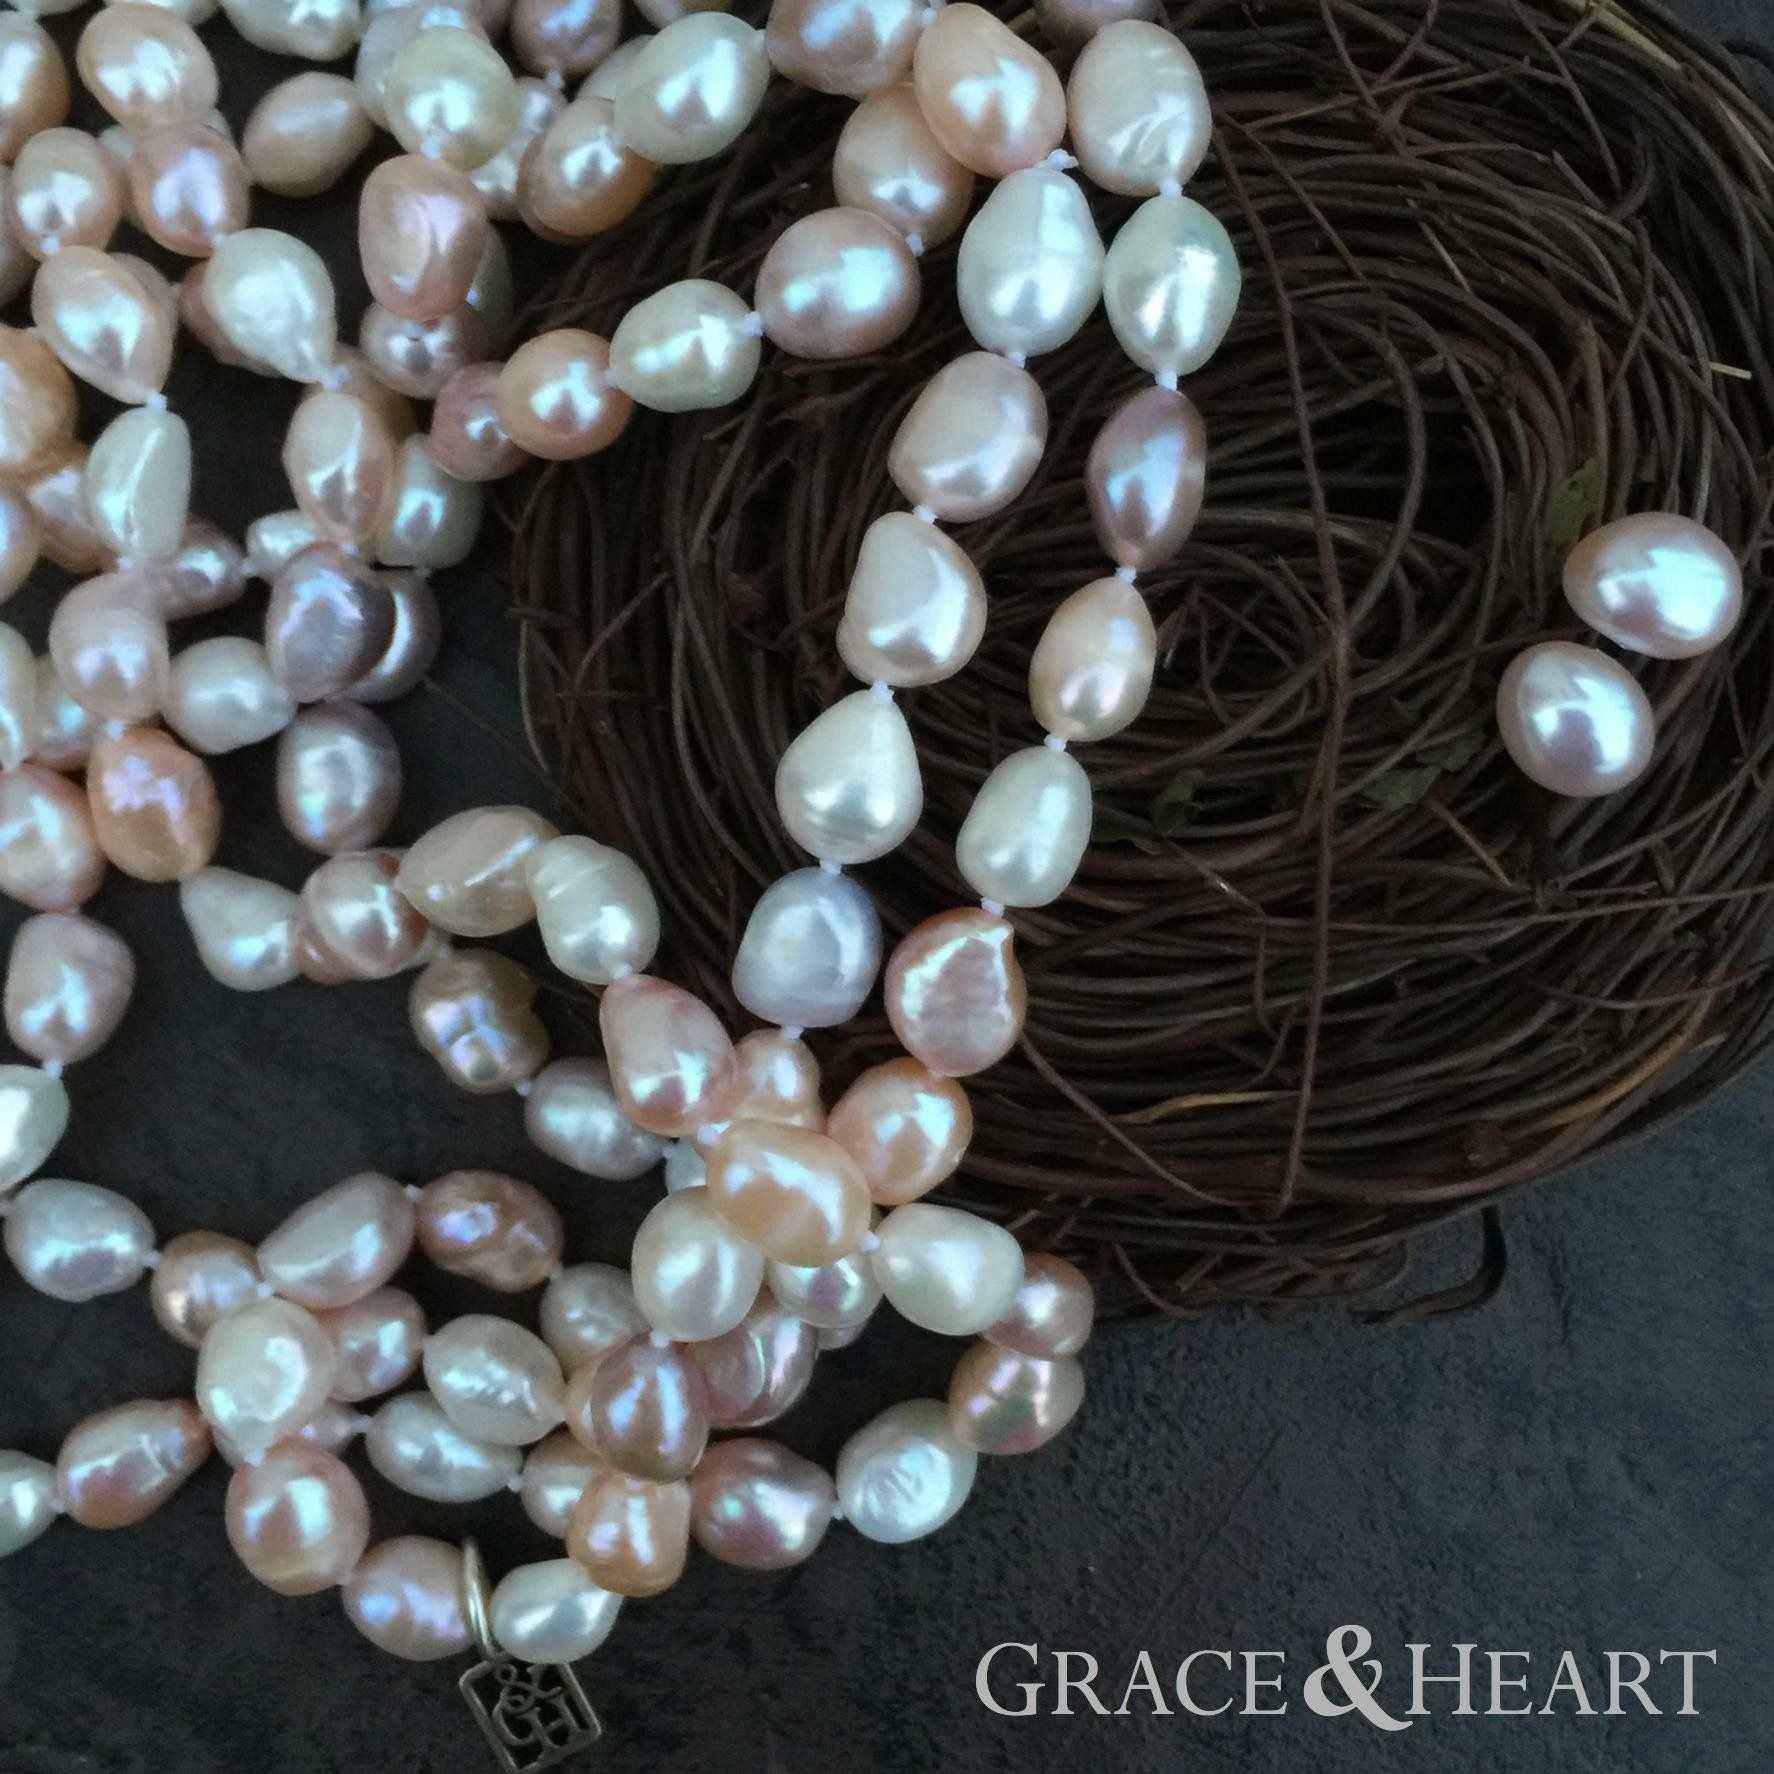 Order our Luster pearls, get the matching pearl studs free in January!  mygraceandheart.com/susanalexander